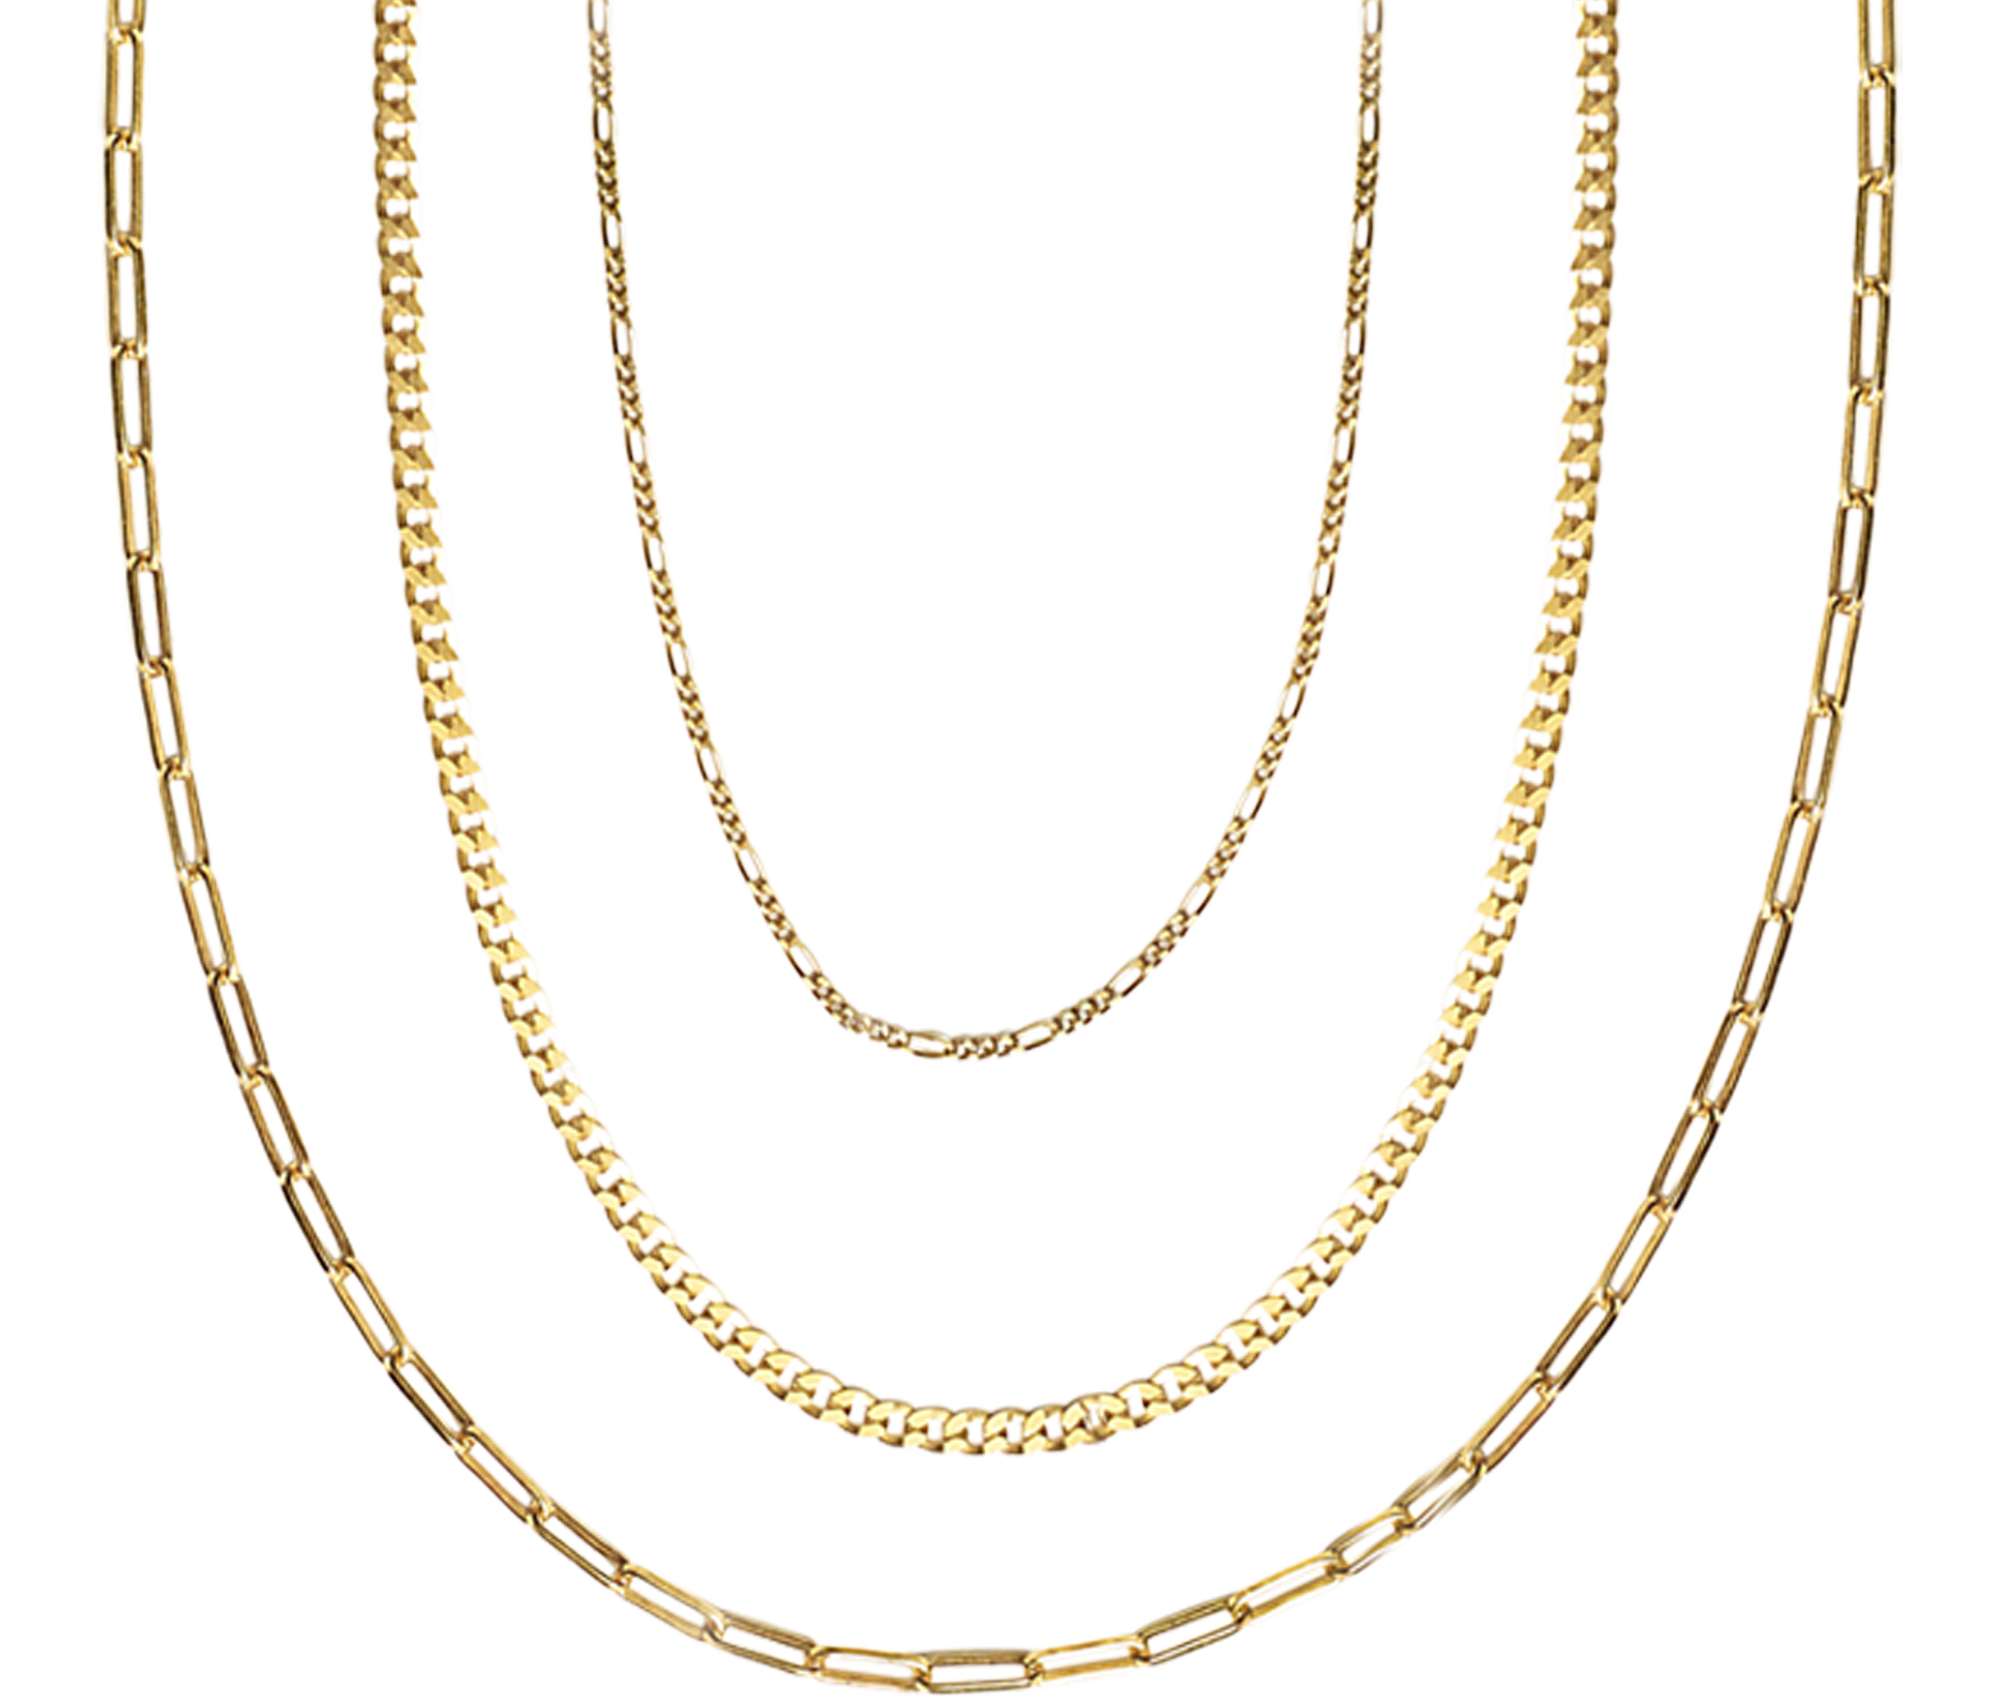 products/set-of-3-chains-necklace-jewelry-16622914568292.png